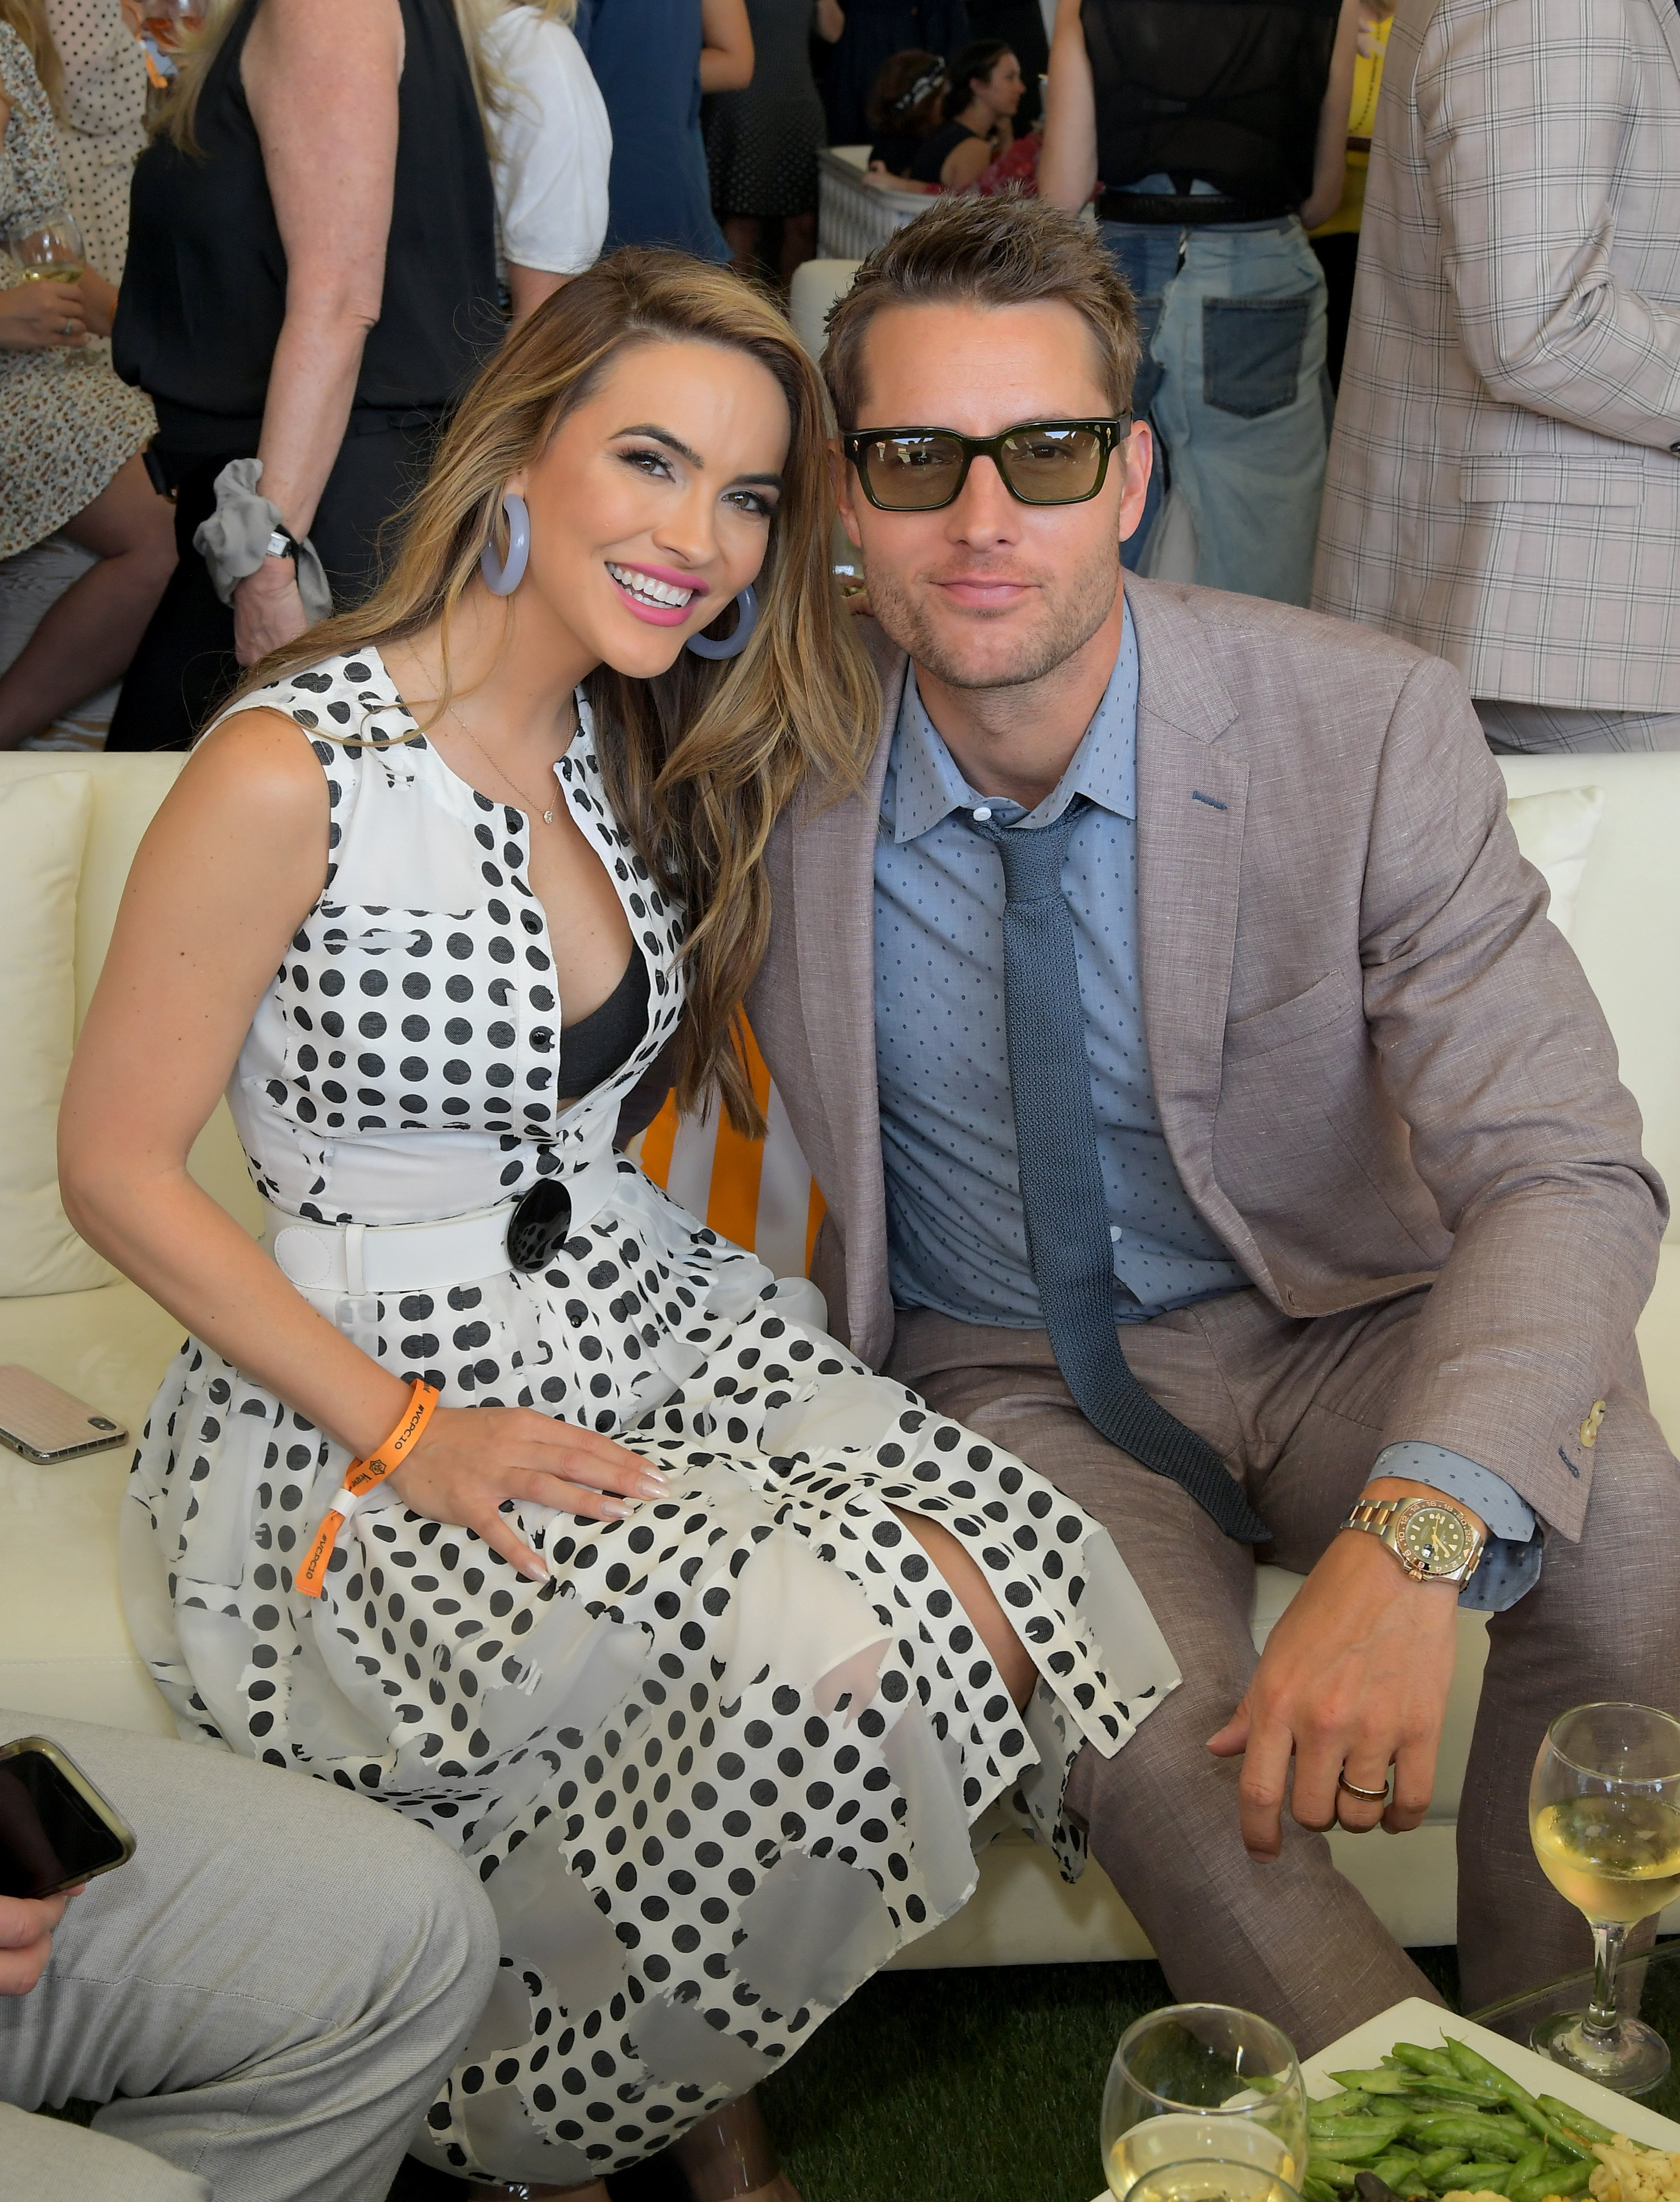 Chrishell Stause and Justin Hartley attend the 10th Annual Veuve Clicquot Polo Classic Los Angeles at Will Rogers State Historic Park on October 05, 2019, in Pacific Palisades, California. | Source: Getty Images.